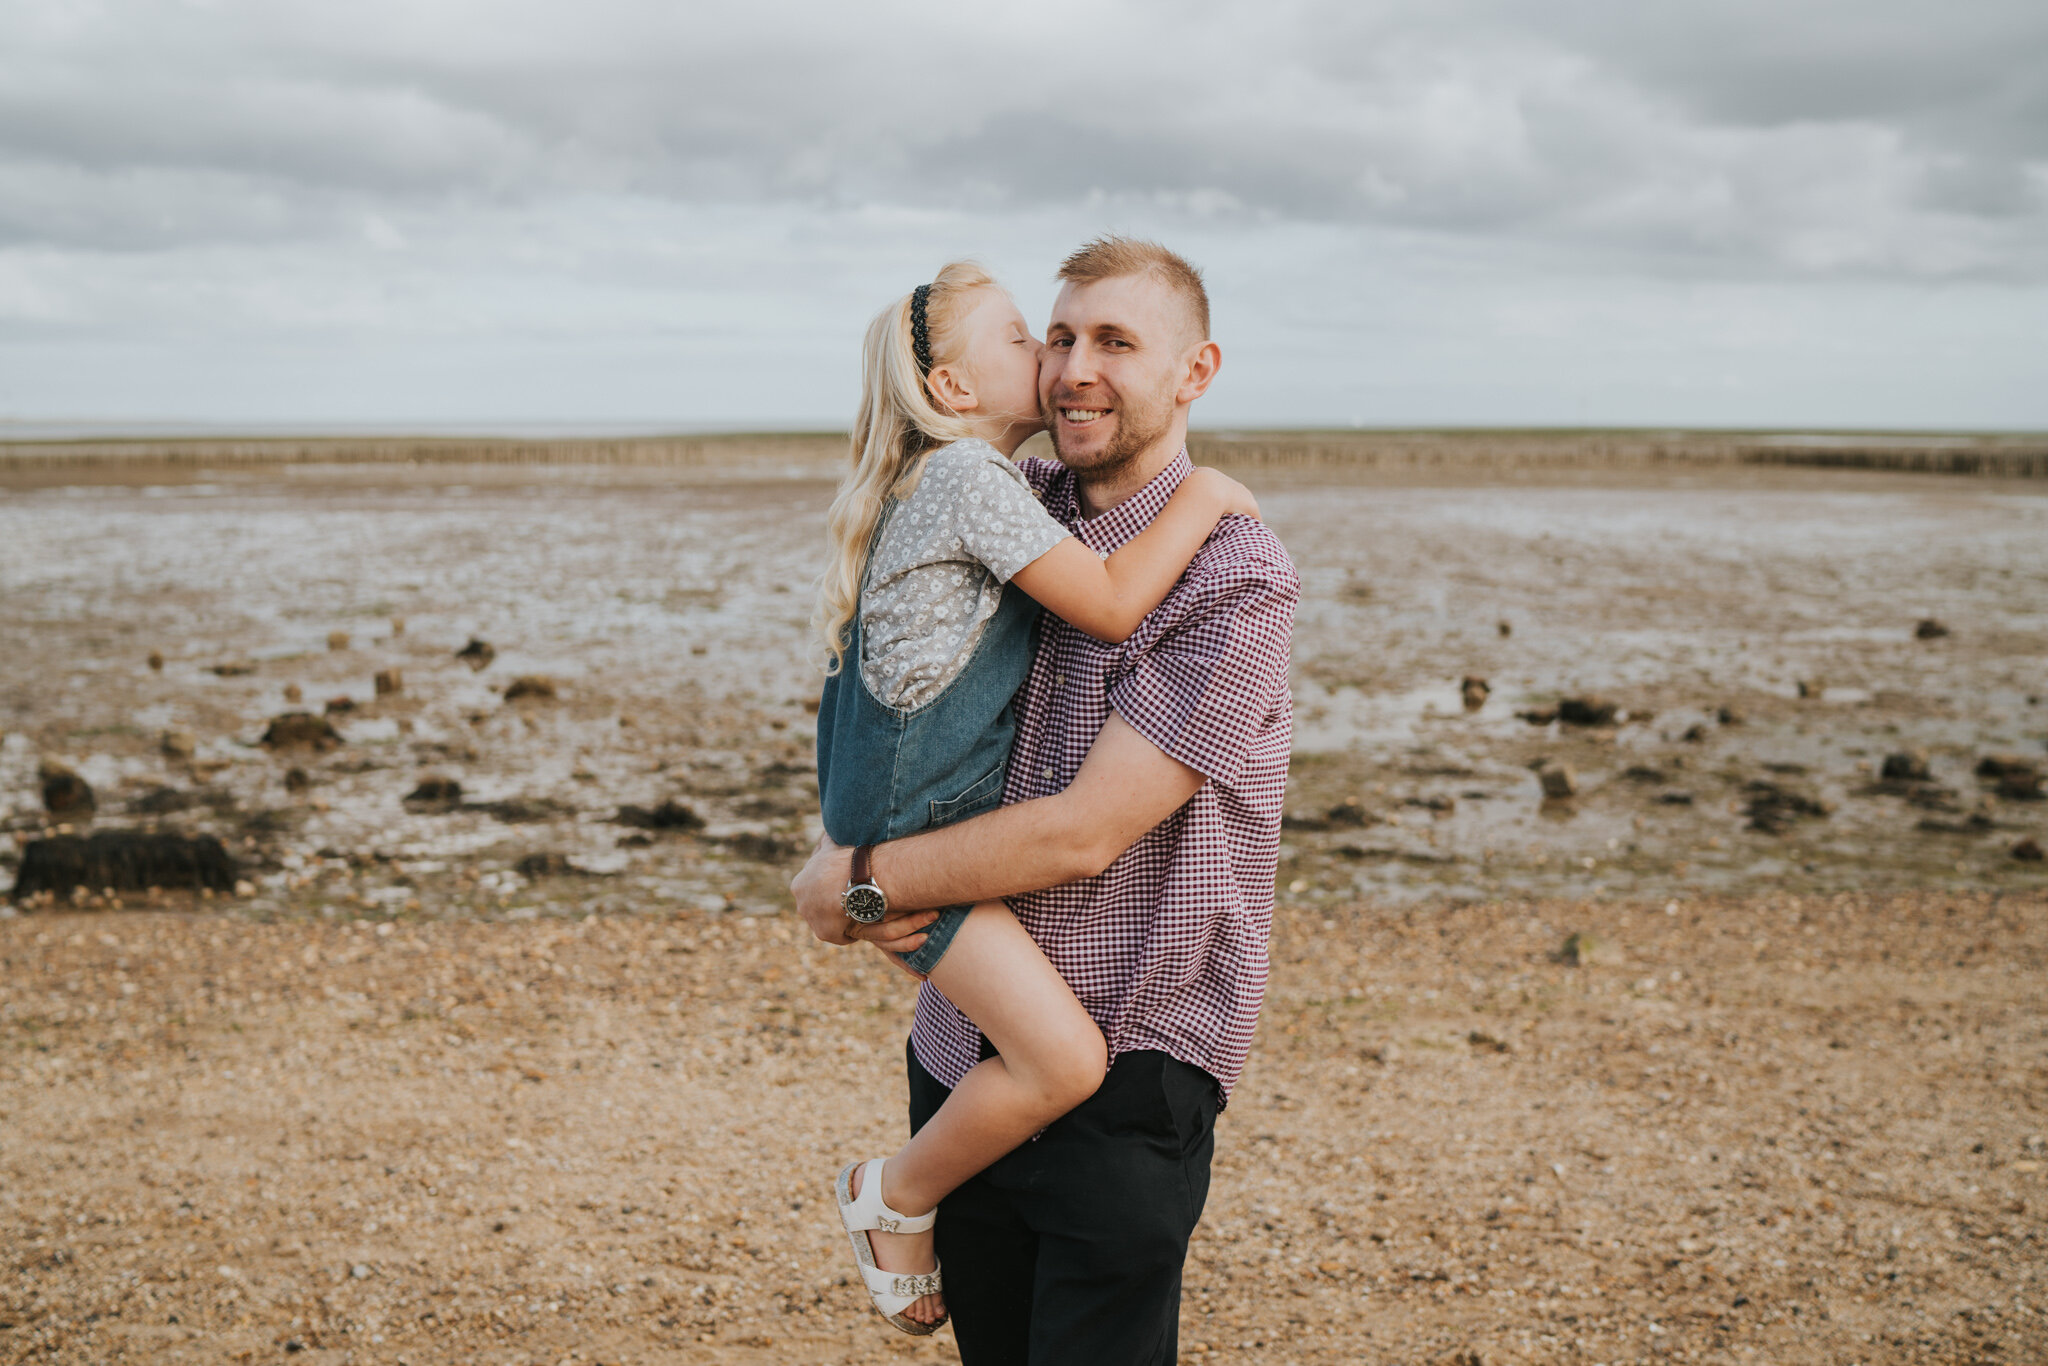 celebratory-beach-family-session-thomson-family-cudmore-grove-east-mersea-grace-elizabeth-colchester-essex-devon-suffolk-and-norfolk-alternative-wedding-and-family-photographer (31 of 53).jpg